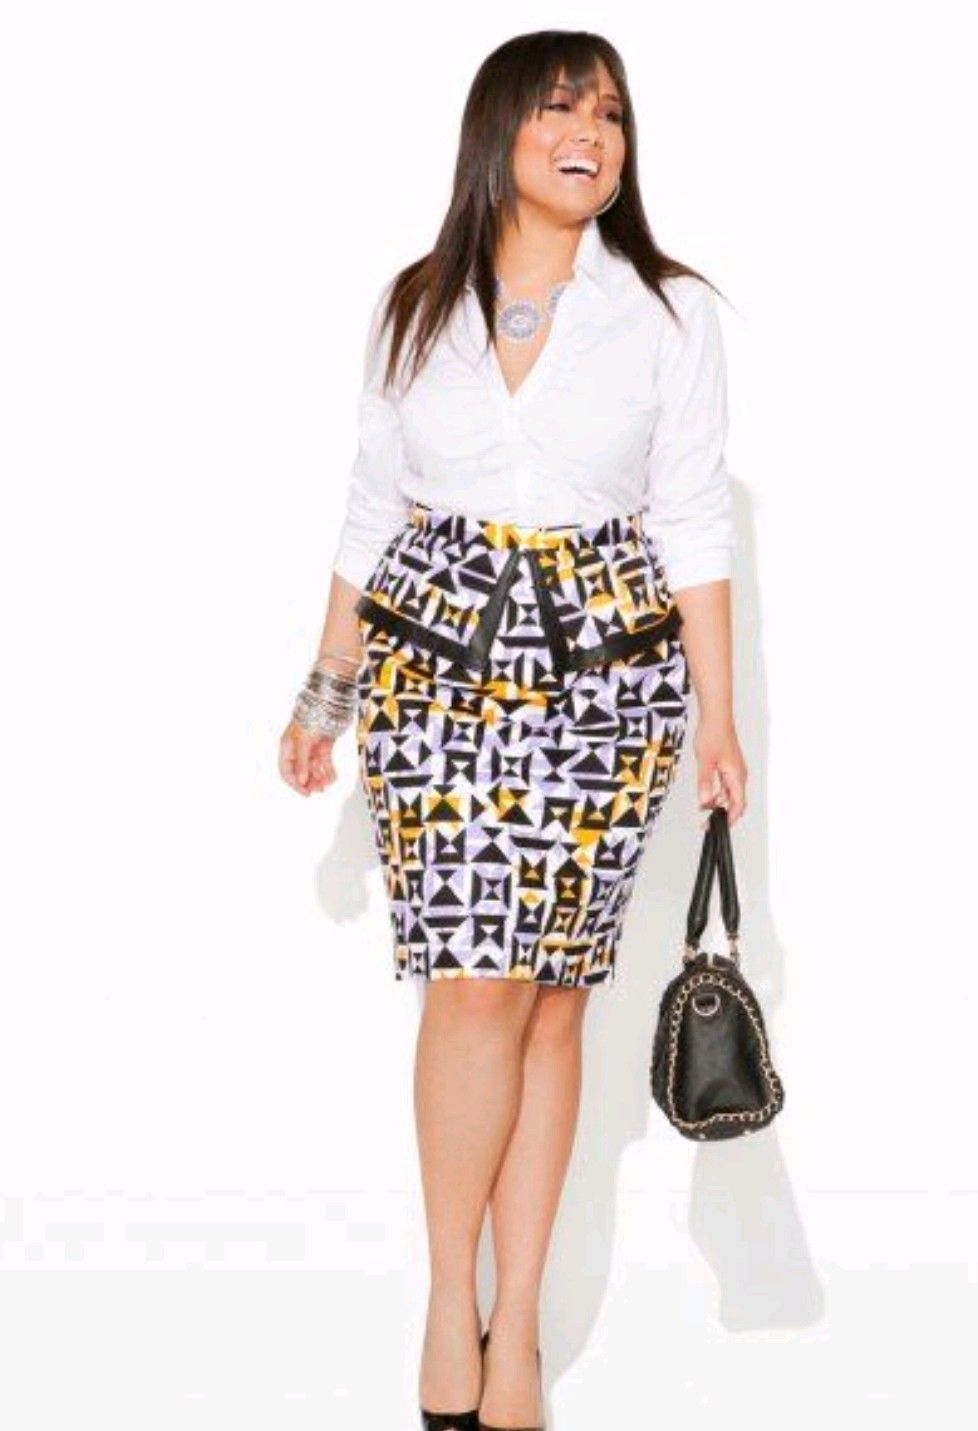 pencil skirt classic at office pinterest mode africaine mode africaine femme et pagne. Black Bedroom Furniture Sets. Home Design Ideas